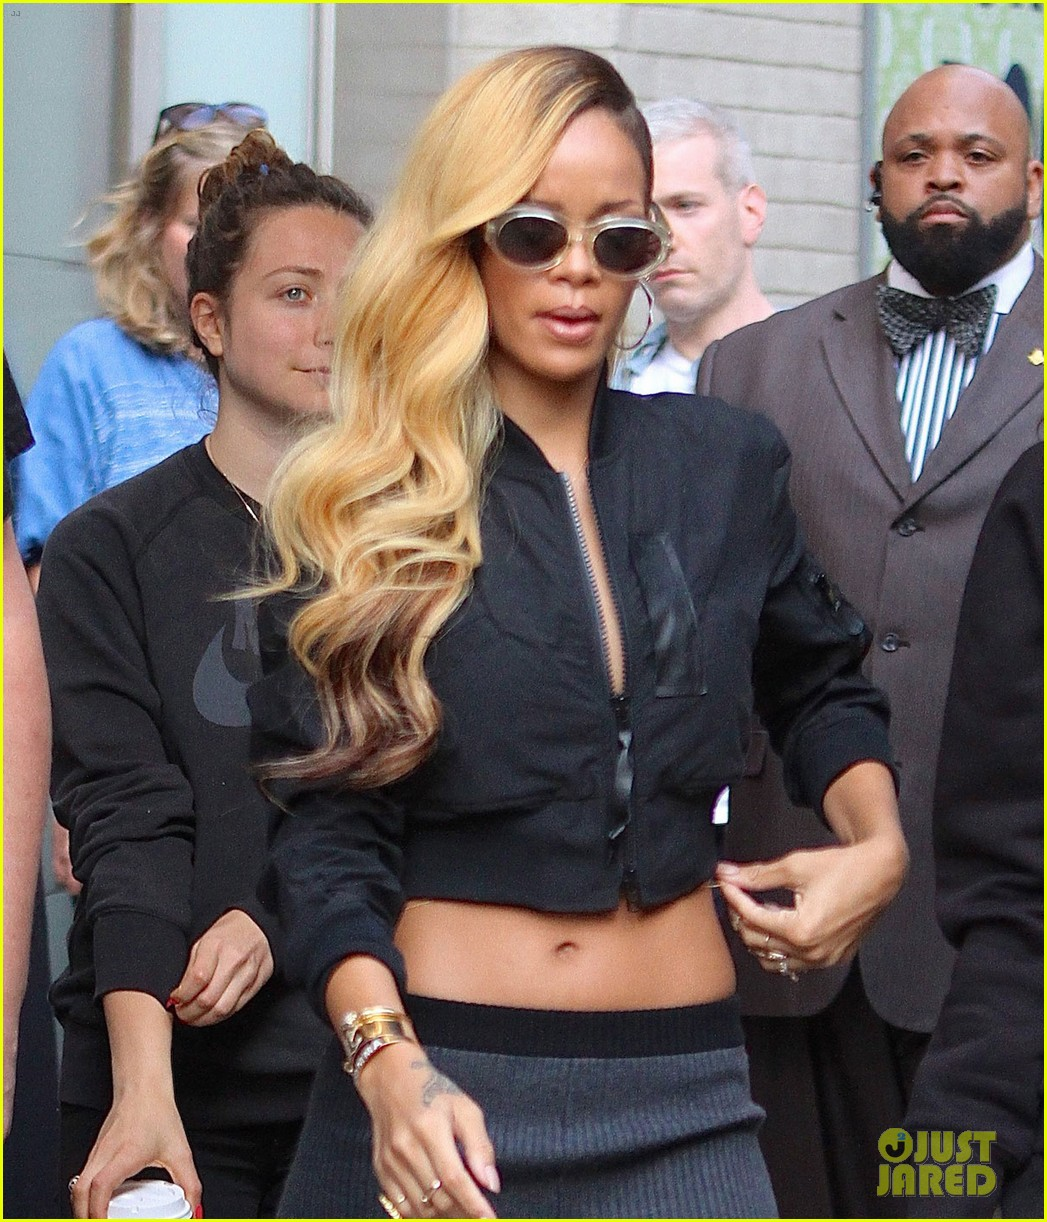 rihanna bares midriff for commercial shoot in nyc 022871121